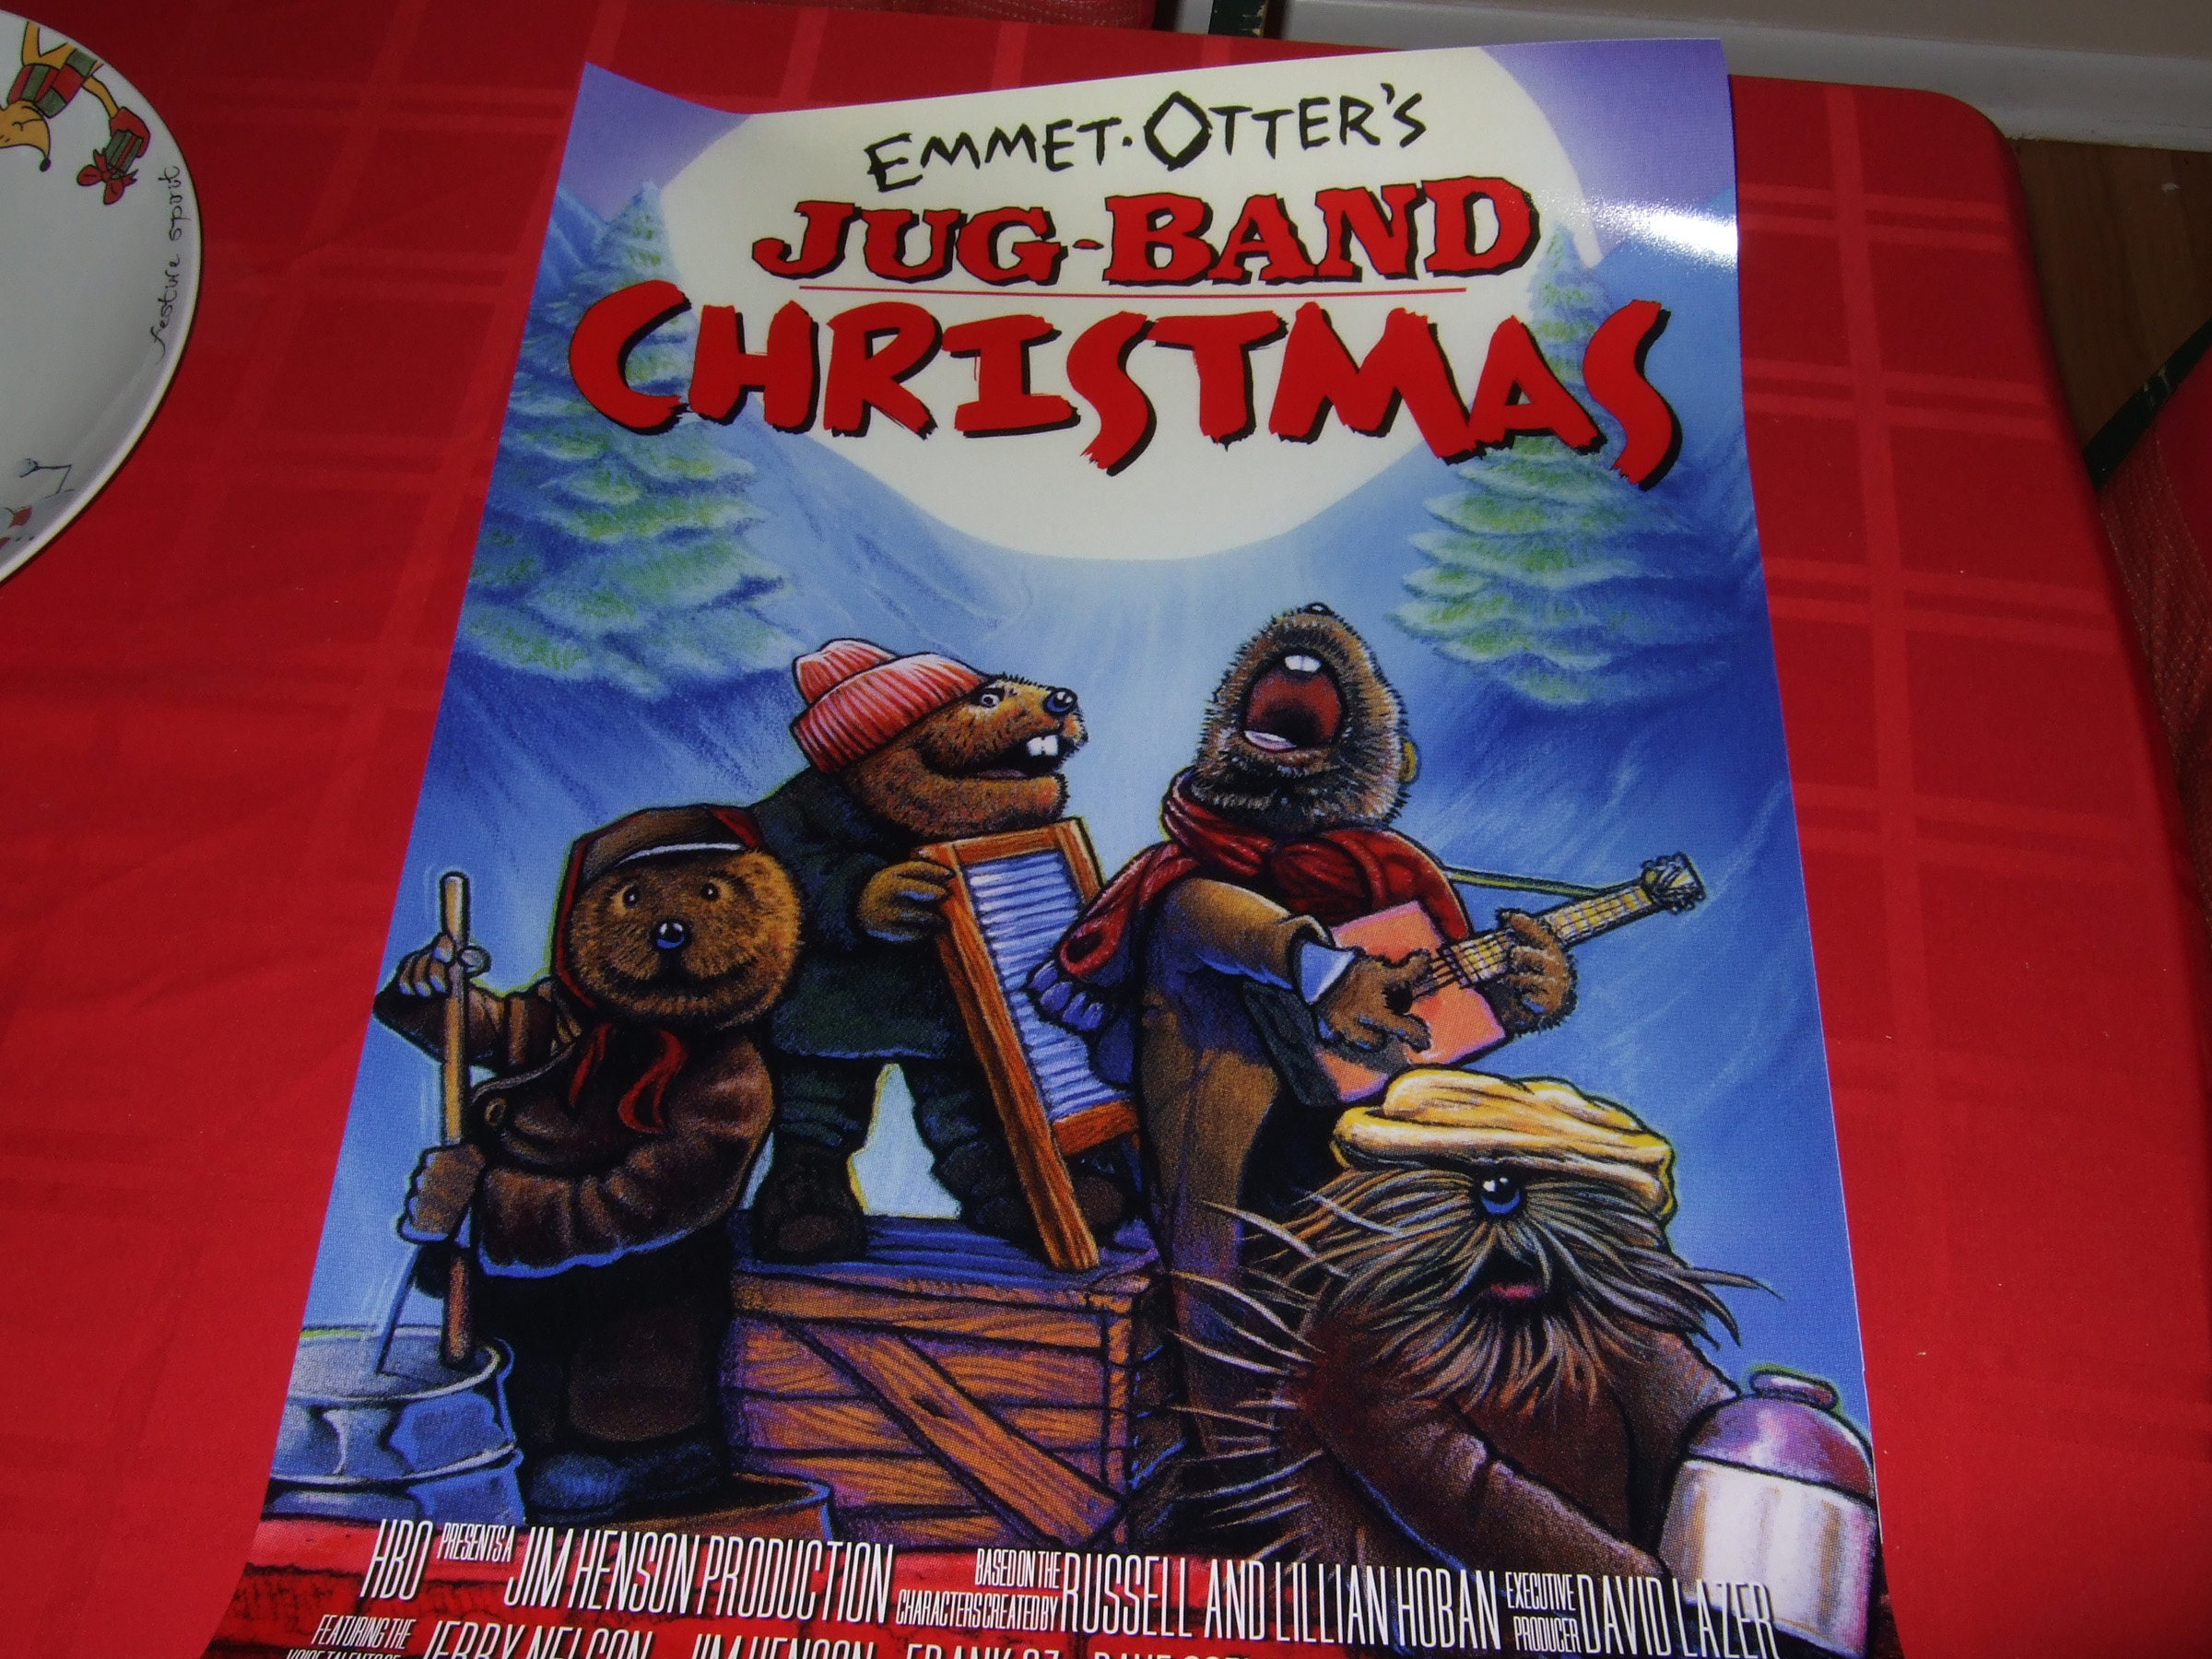 LE Emmet Otter Movie Poster (c) 2011 - 2017 Video Game Obsession